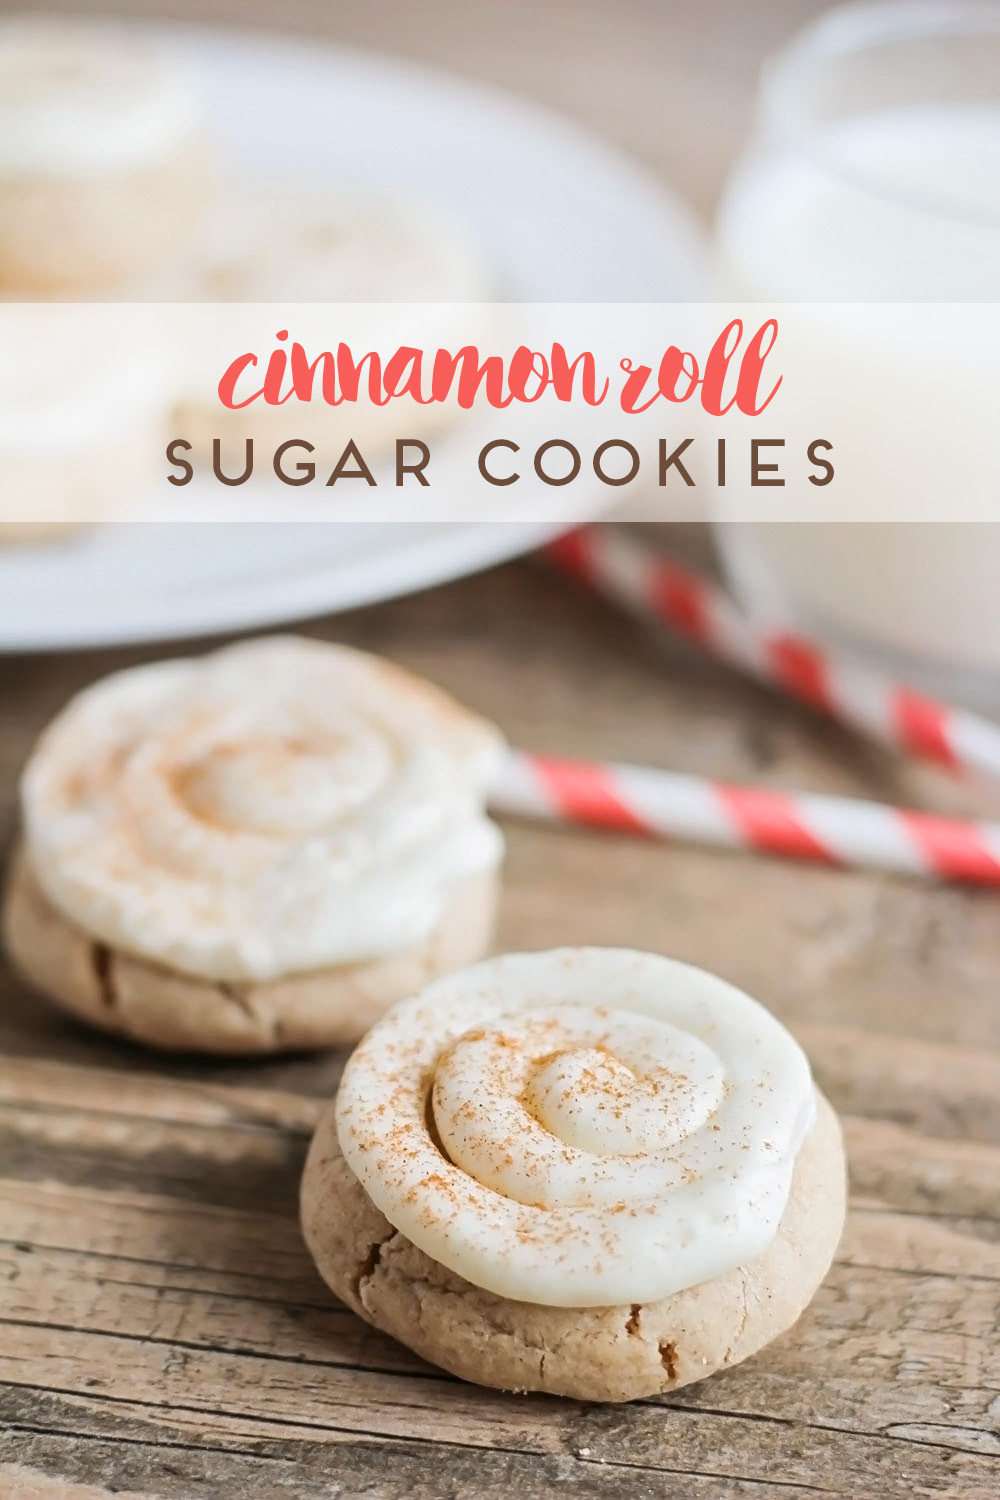 Cinnamon roll sugar cookies - buttery cinnamon sugar cookies topped with cream cheese icing and a sprinkle of cinnamon. So amazingly delicious!